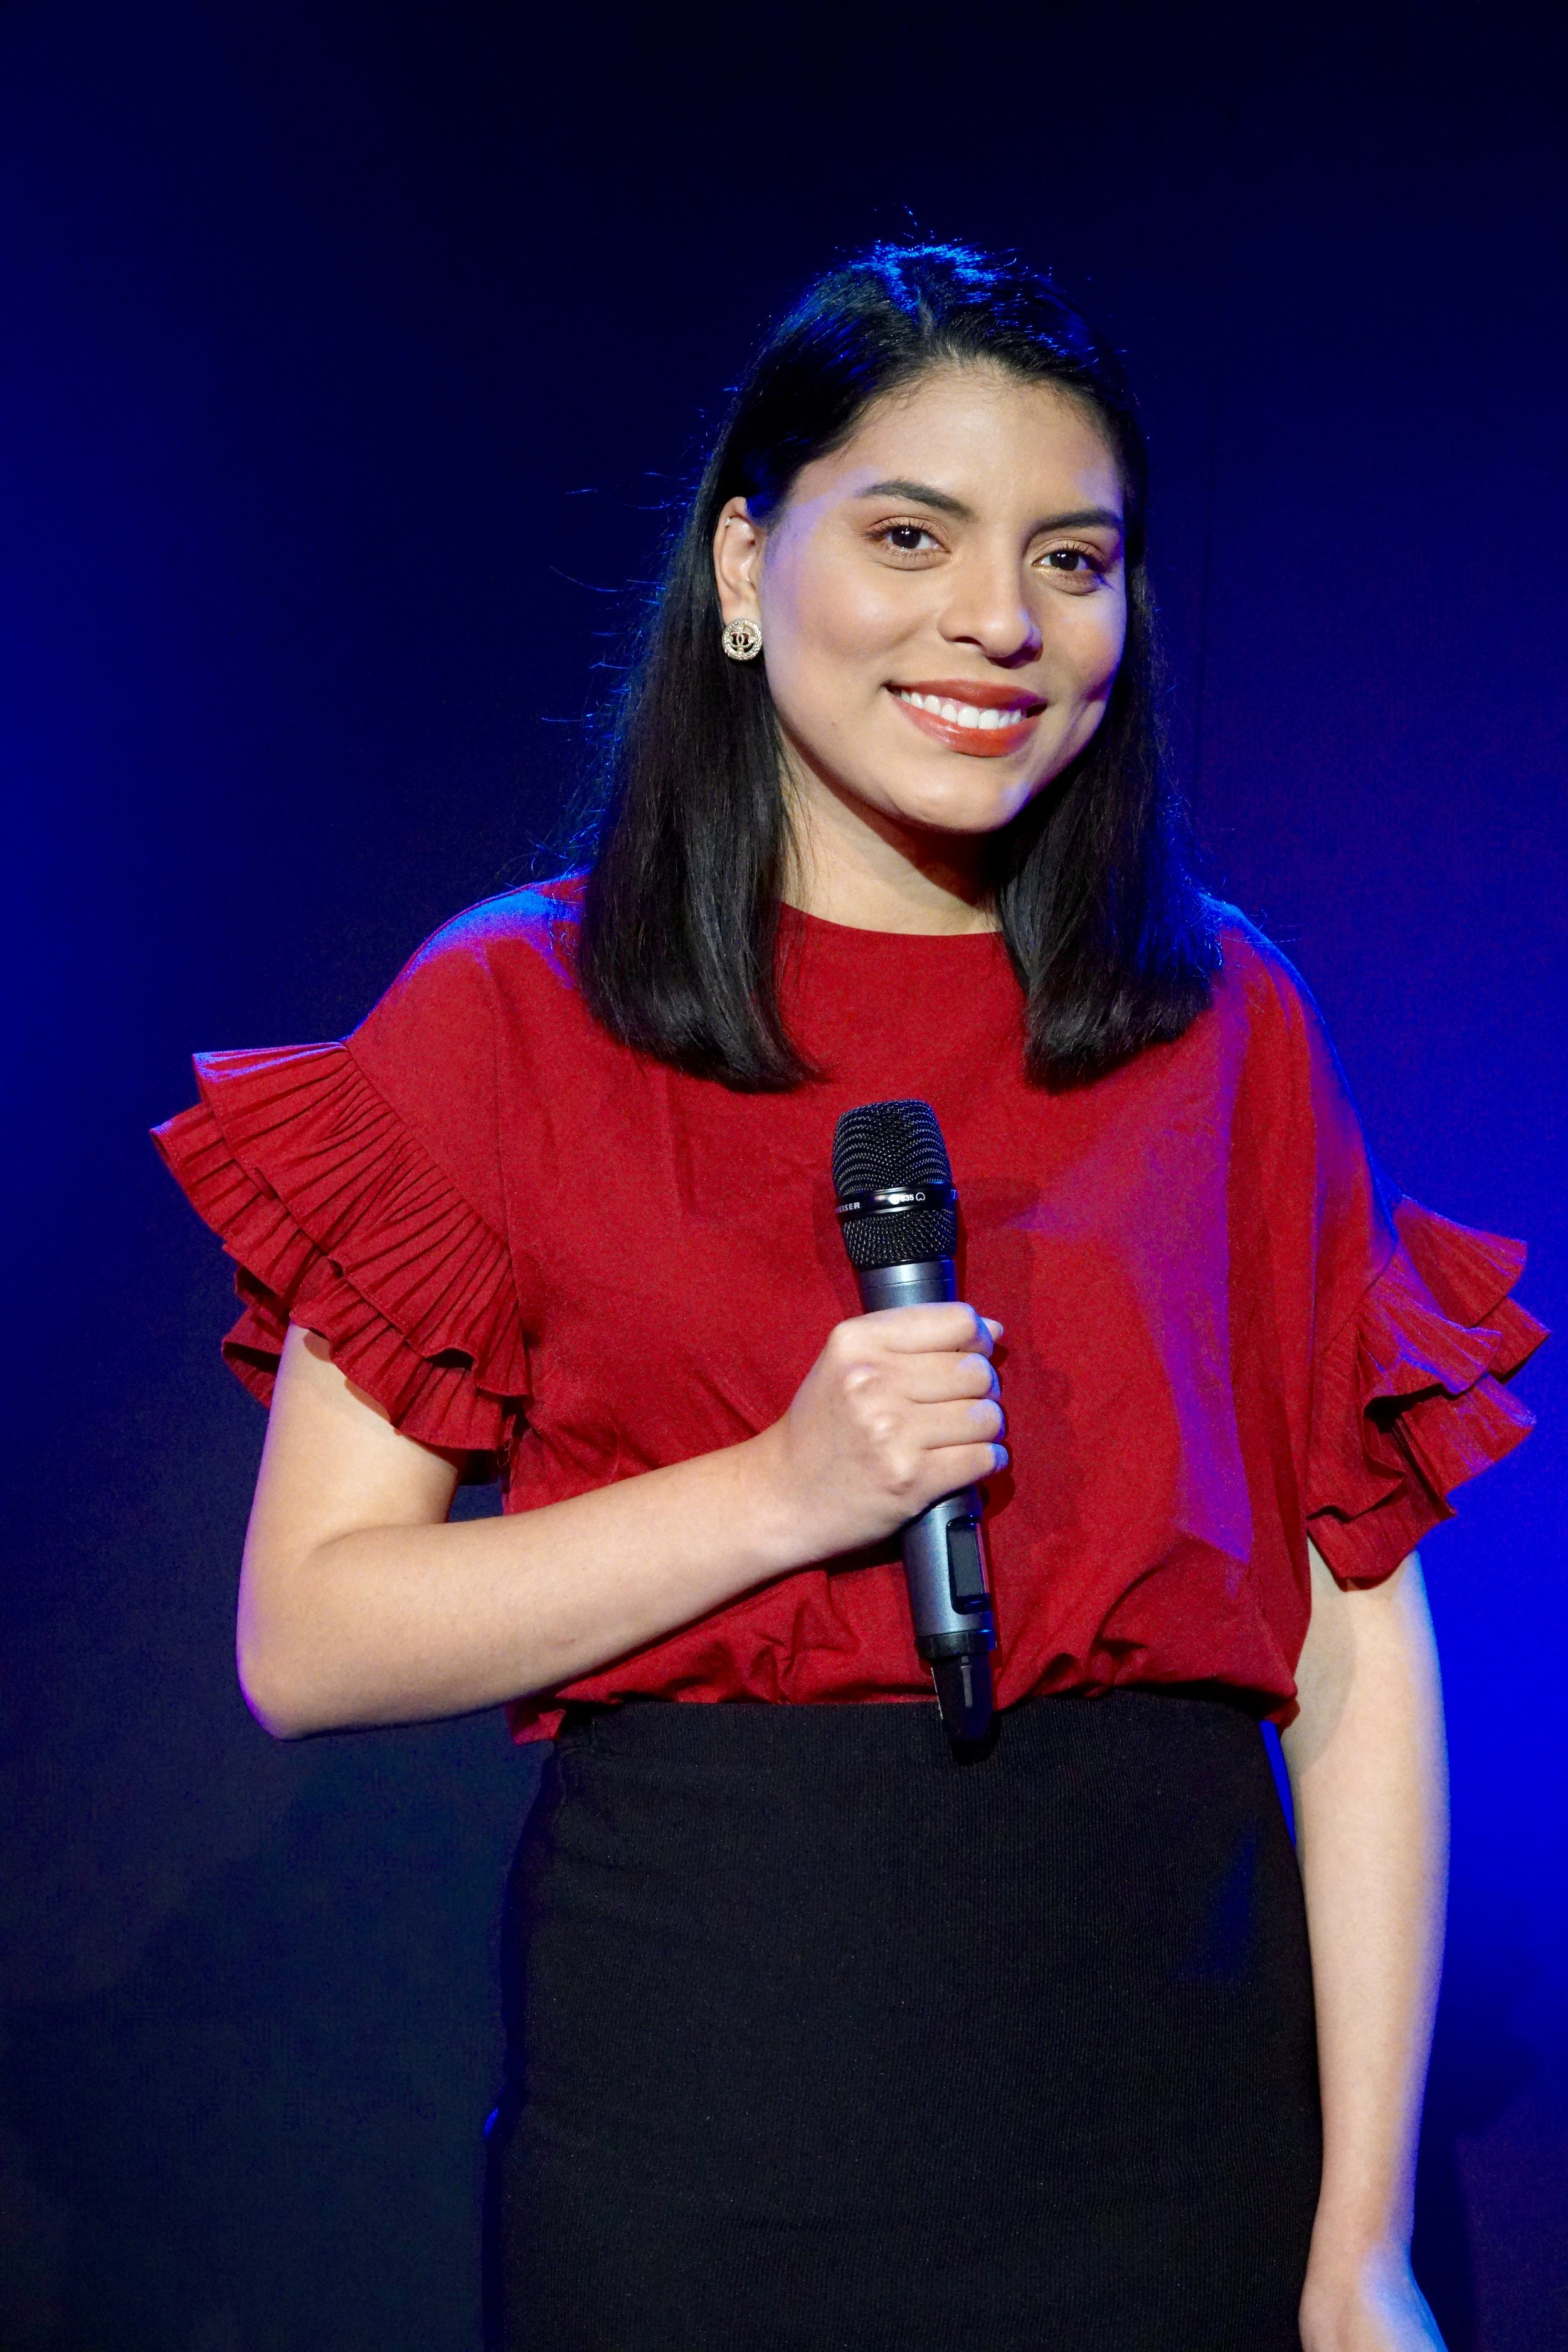 Maria Meza - Maria Meza is a Communications & Media Technologies major with a minor in Fashion Journalism at Academy of Art University. She has always dreamed of being on camera, which pushed her to create her own content on YouTube, AGMM. She hopes to inspire others by showing how to be yourself and not be afraid to show your talents to the world. In the future, she hopes to become a television host for an entertainment company and host events such as red carpet ceremonies and award shows.